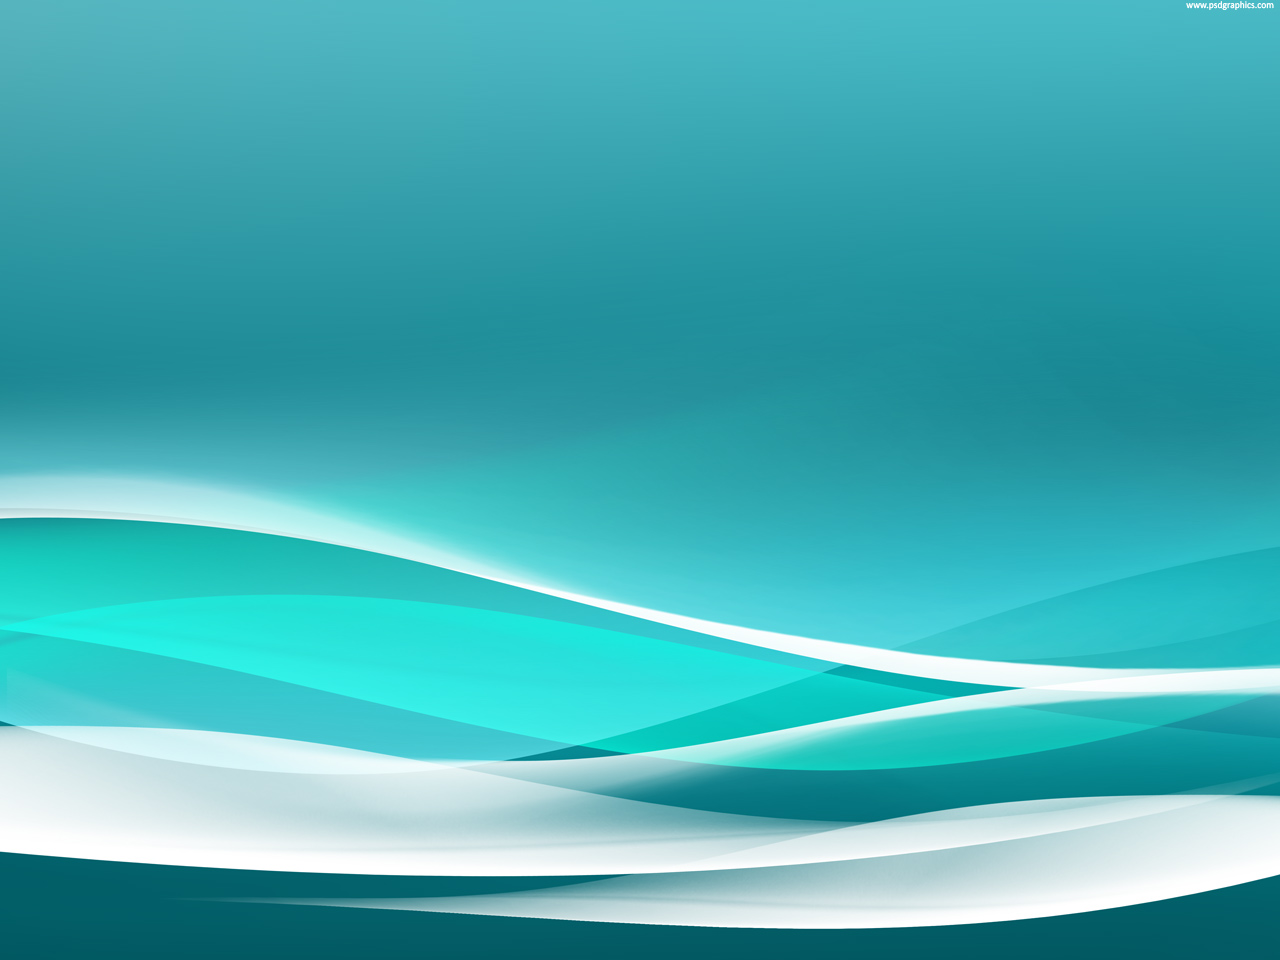 Medium Size Preview 1280x960px Wavy Turquoise Background